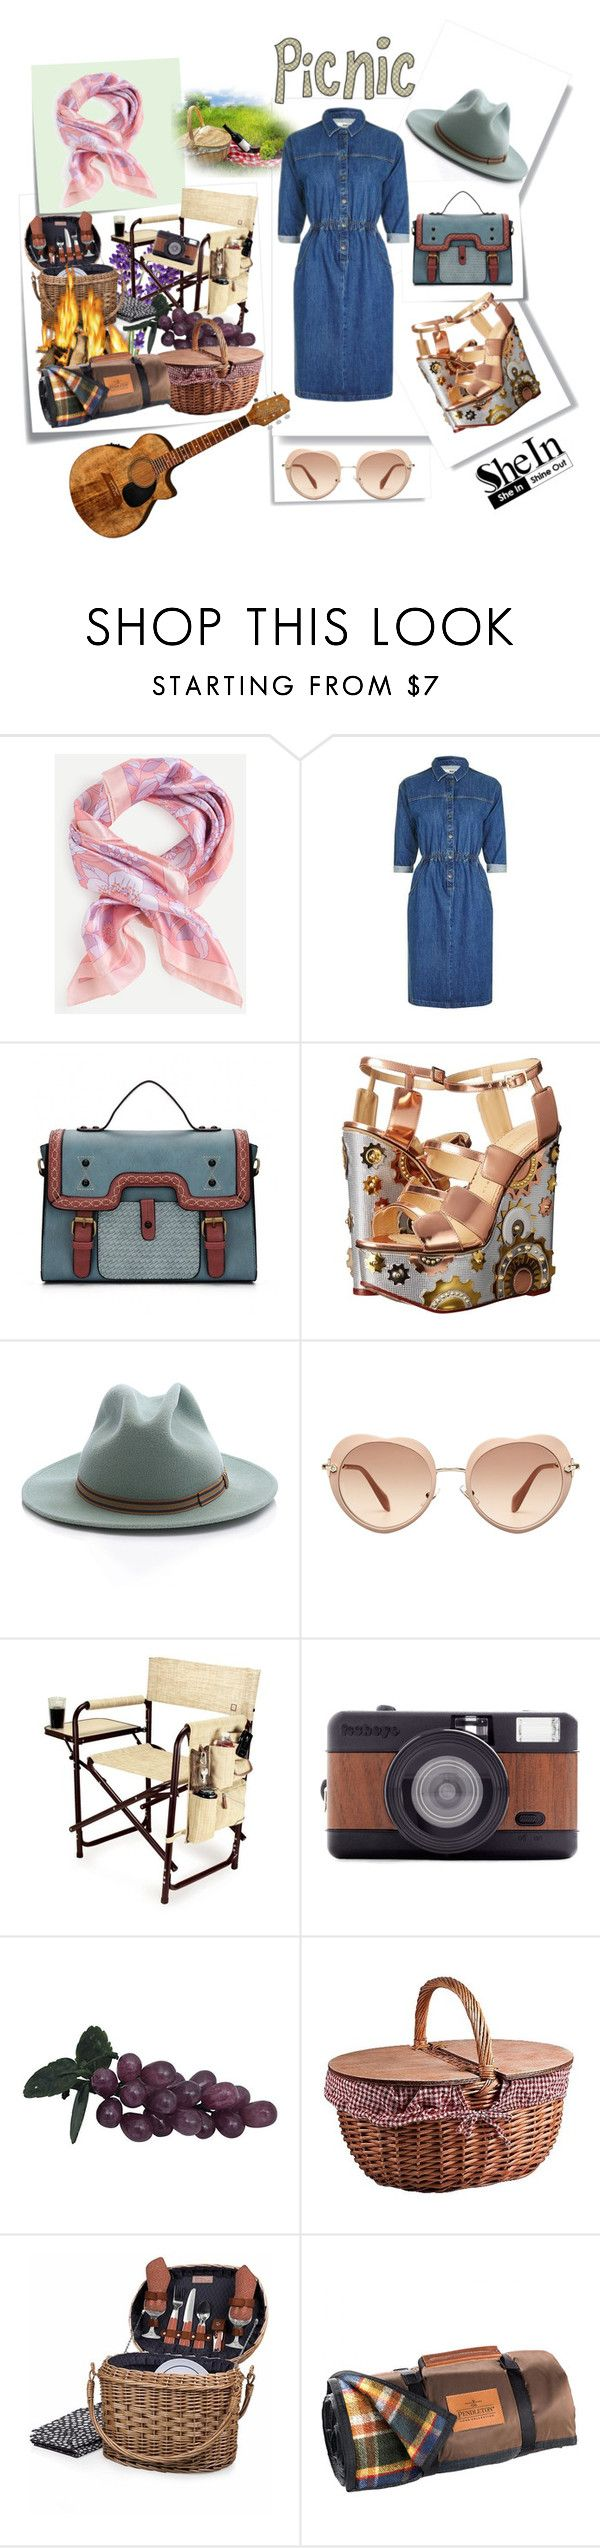 """""""Picnic"""" by cordelia-fortuna ❤ liked on Polyvore featuring Post-It, Topshop, Charlotte Olympia, Anthony Peto, Miu Miu, Picnic Time, Lomography and Pendleton"""